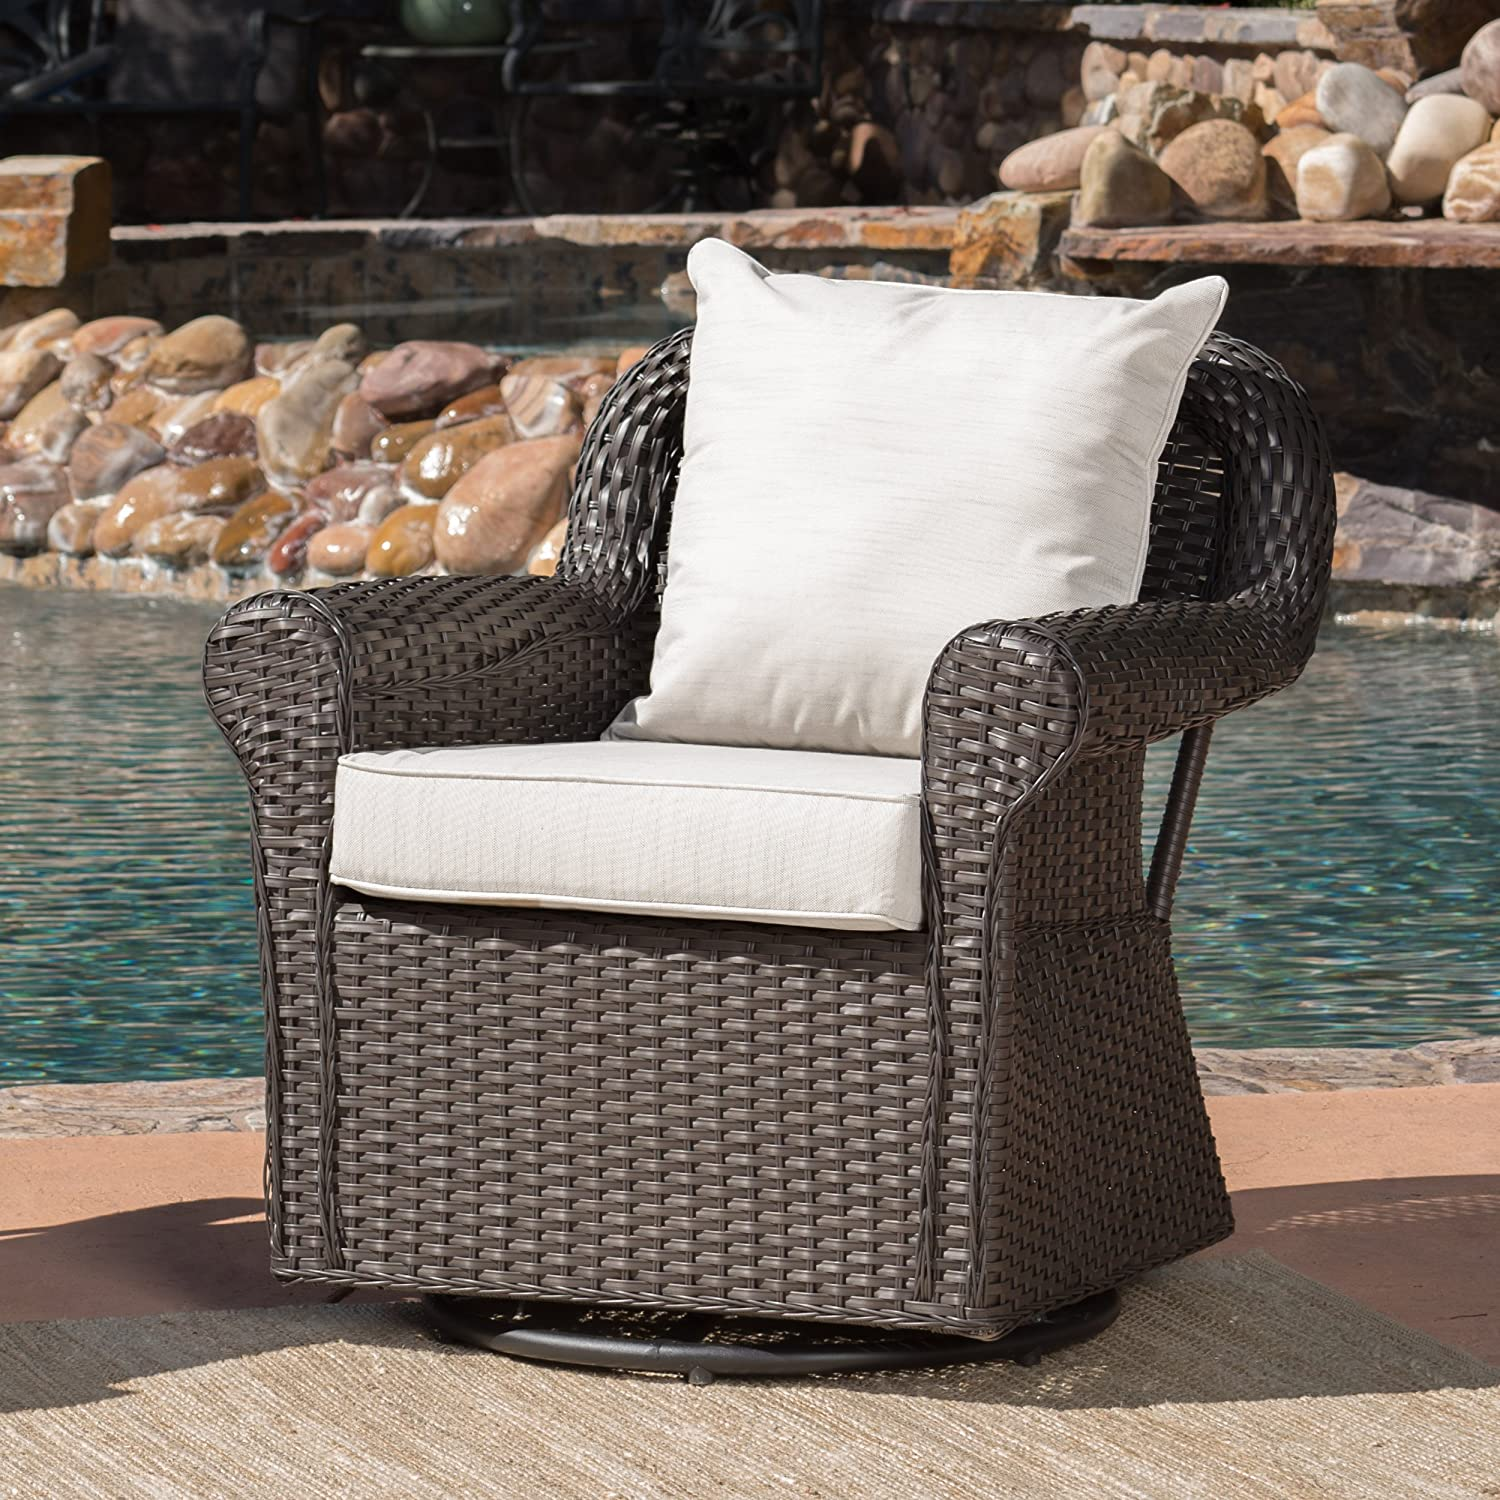 Amazon com christopher knight home augusta patio furniture outdoor wicker swivel rocker glider chair single garden outdoor